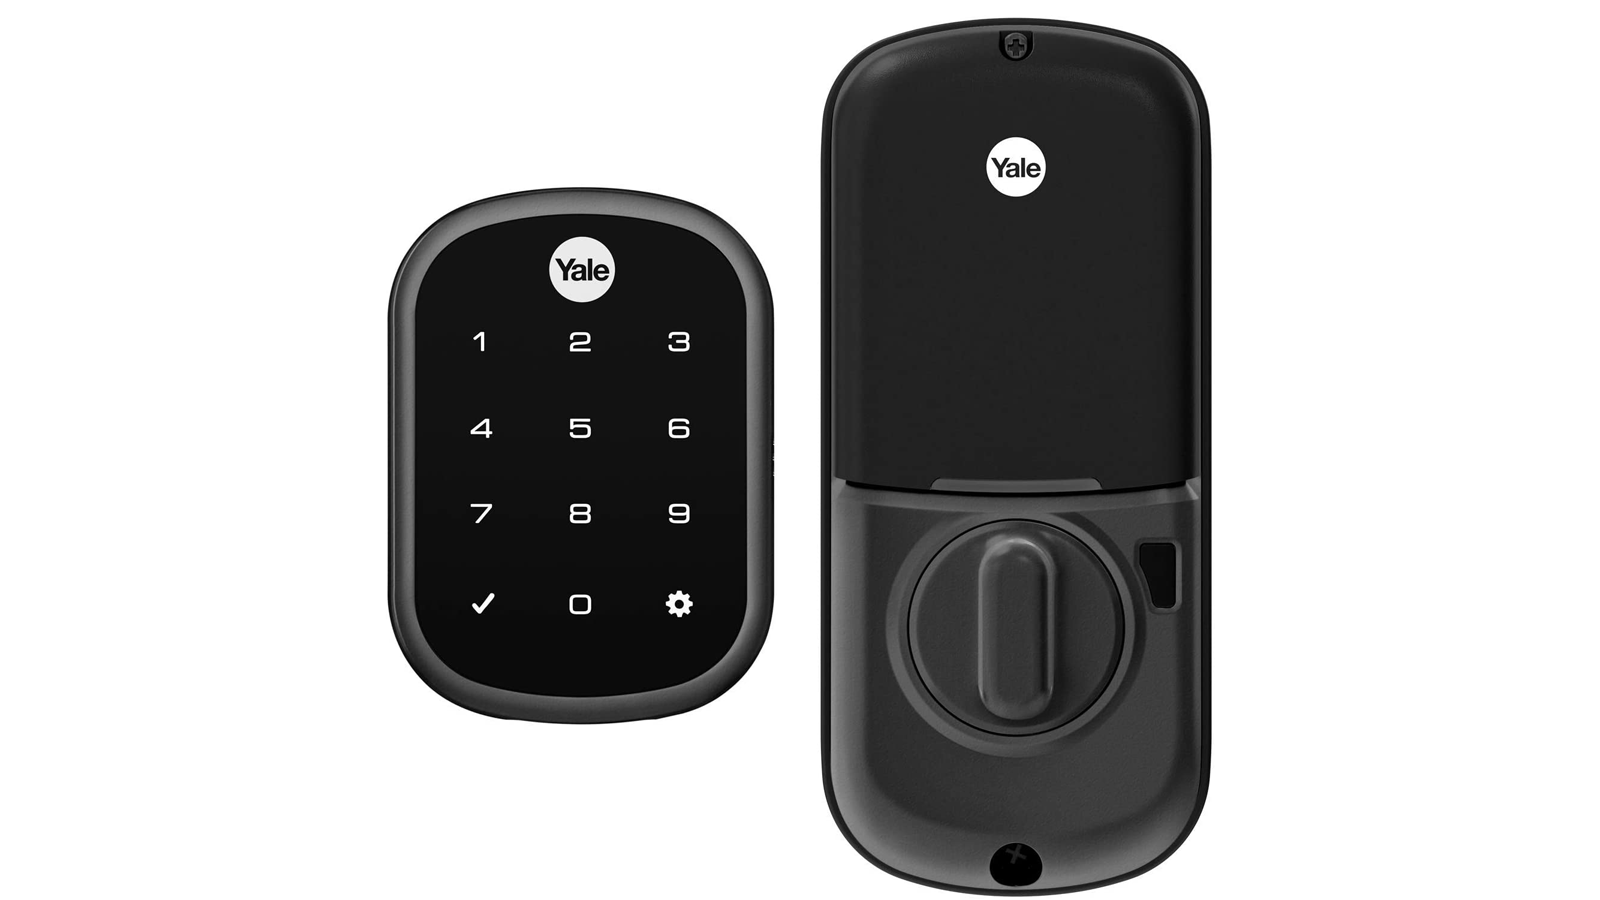 A photo of the Yale Assure smart lock and keypad.